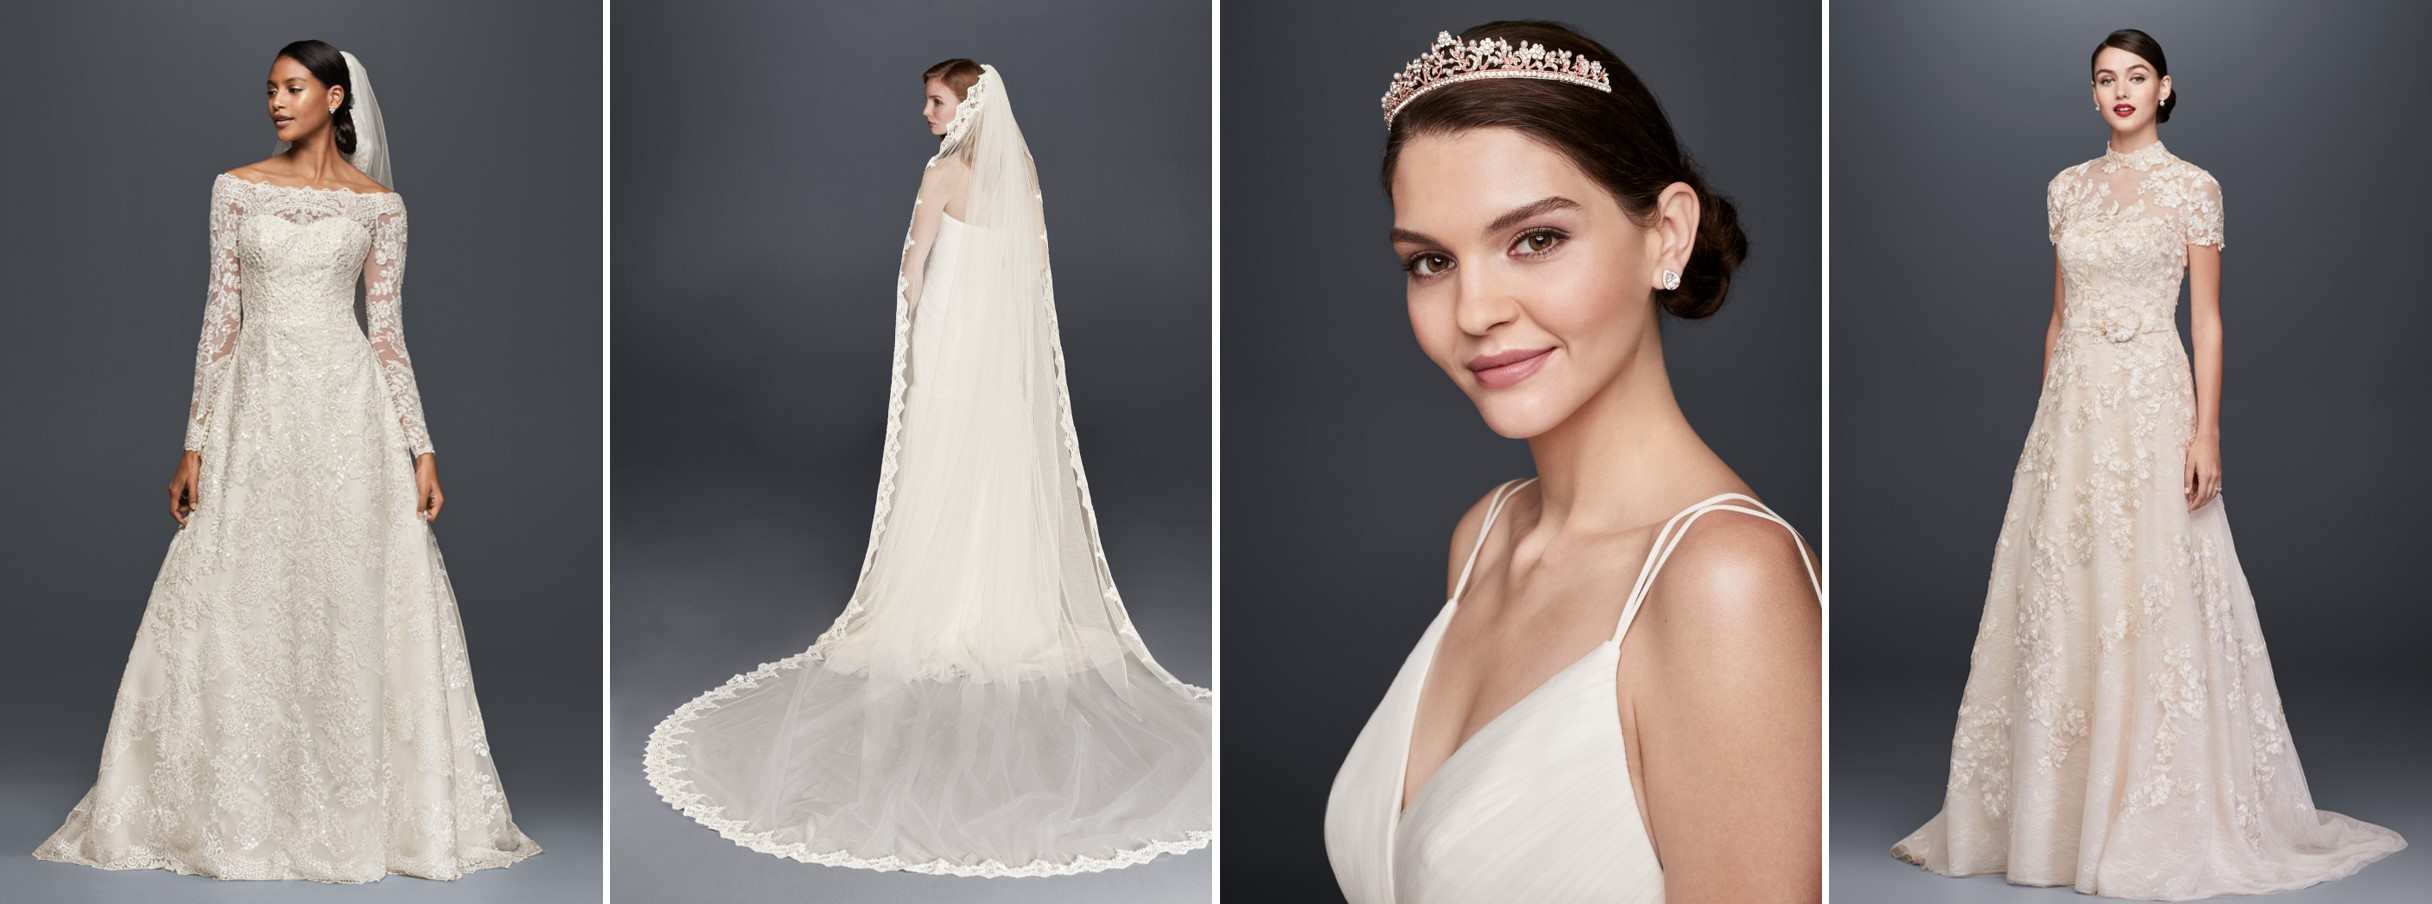 Princess Wedding Dress Inspiration